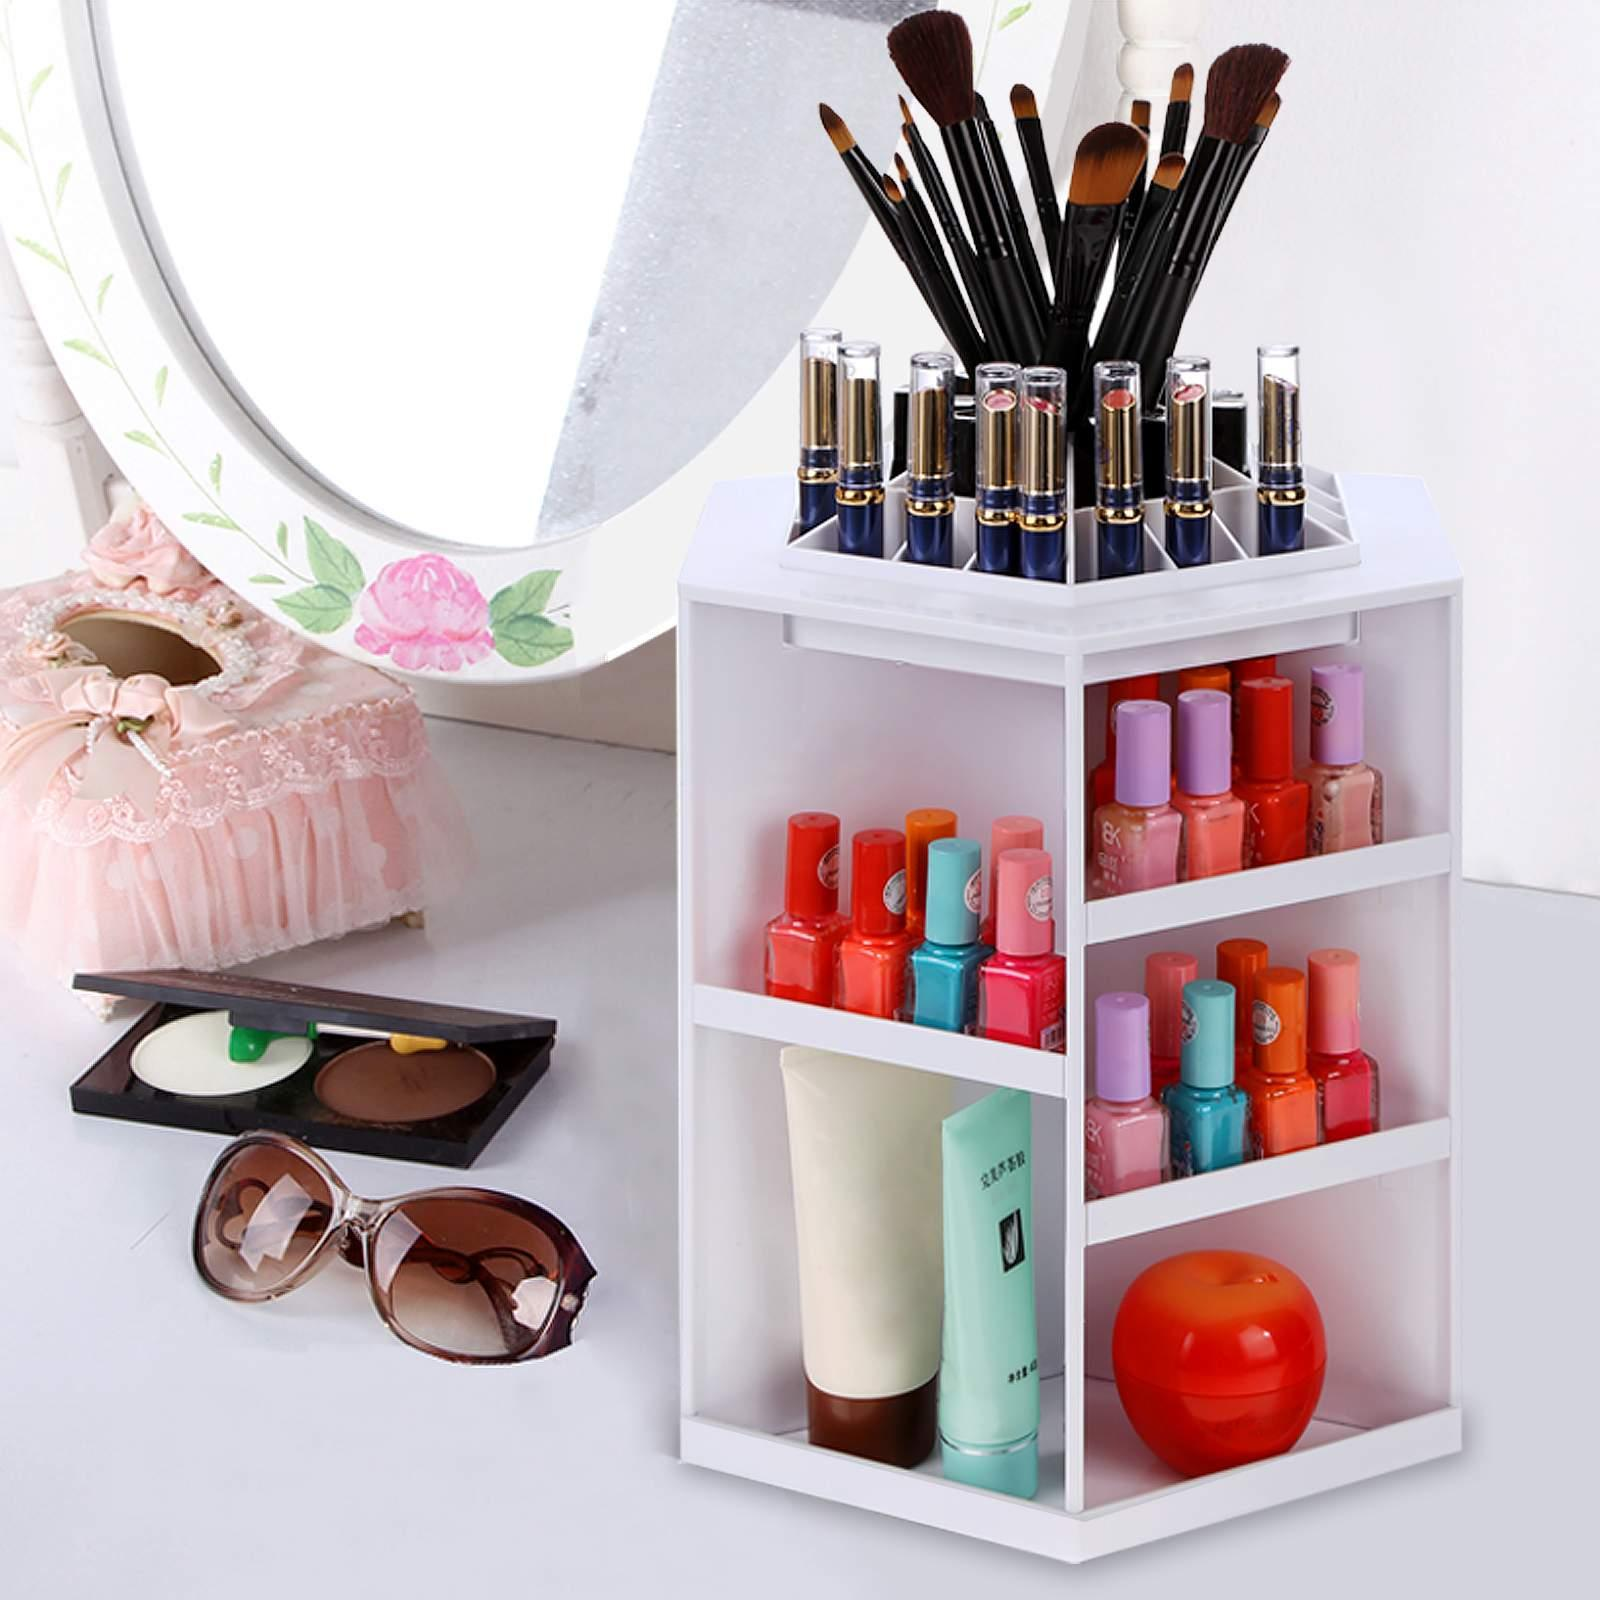 Homdox Plastic 360 Degree Rotating Makeup Organizer Cosmetic Organizer Box